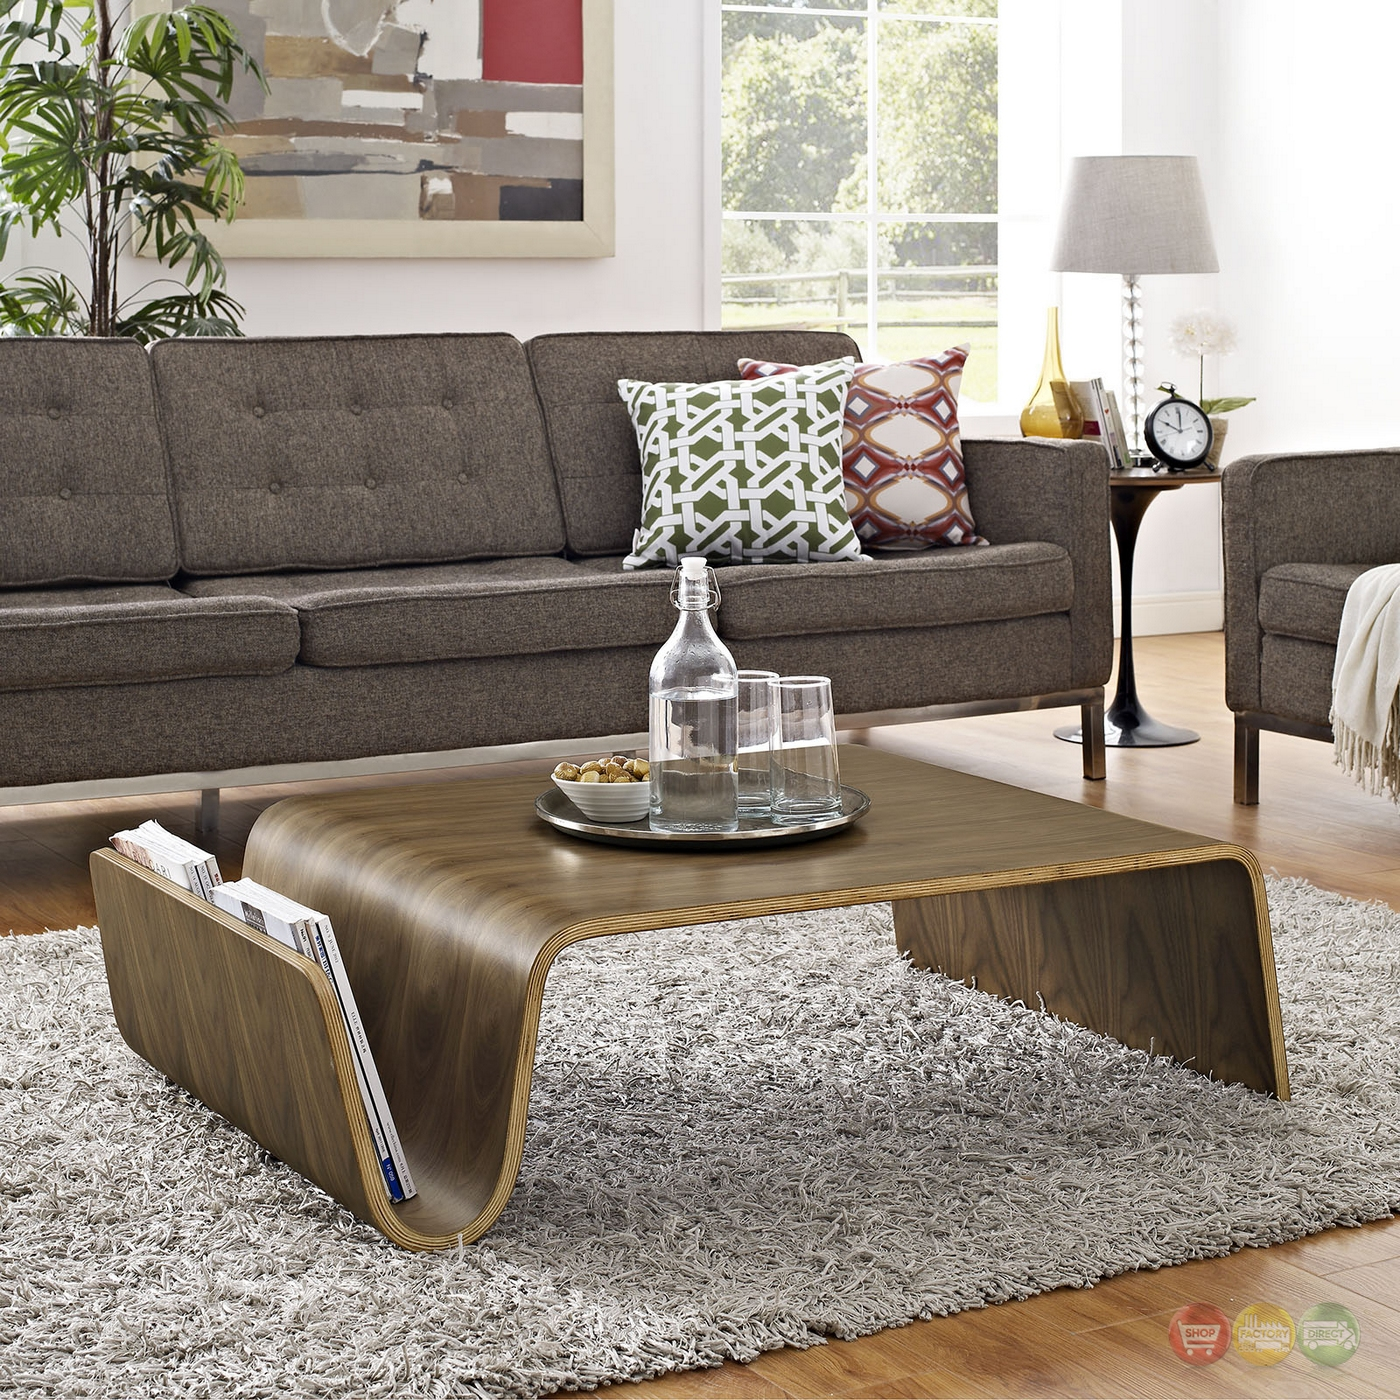 Polaris Contemporary Wood Coffee Table With Magazine